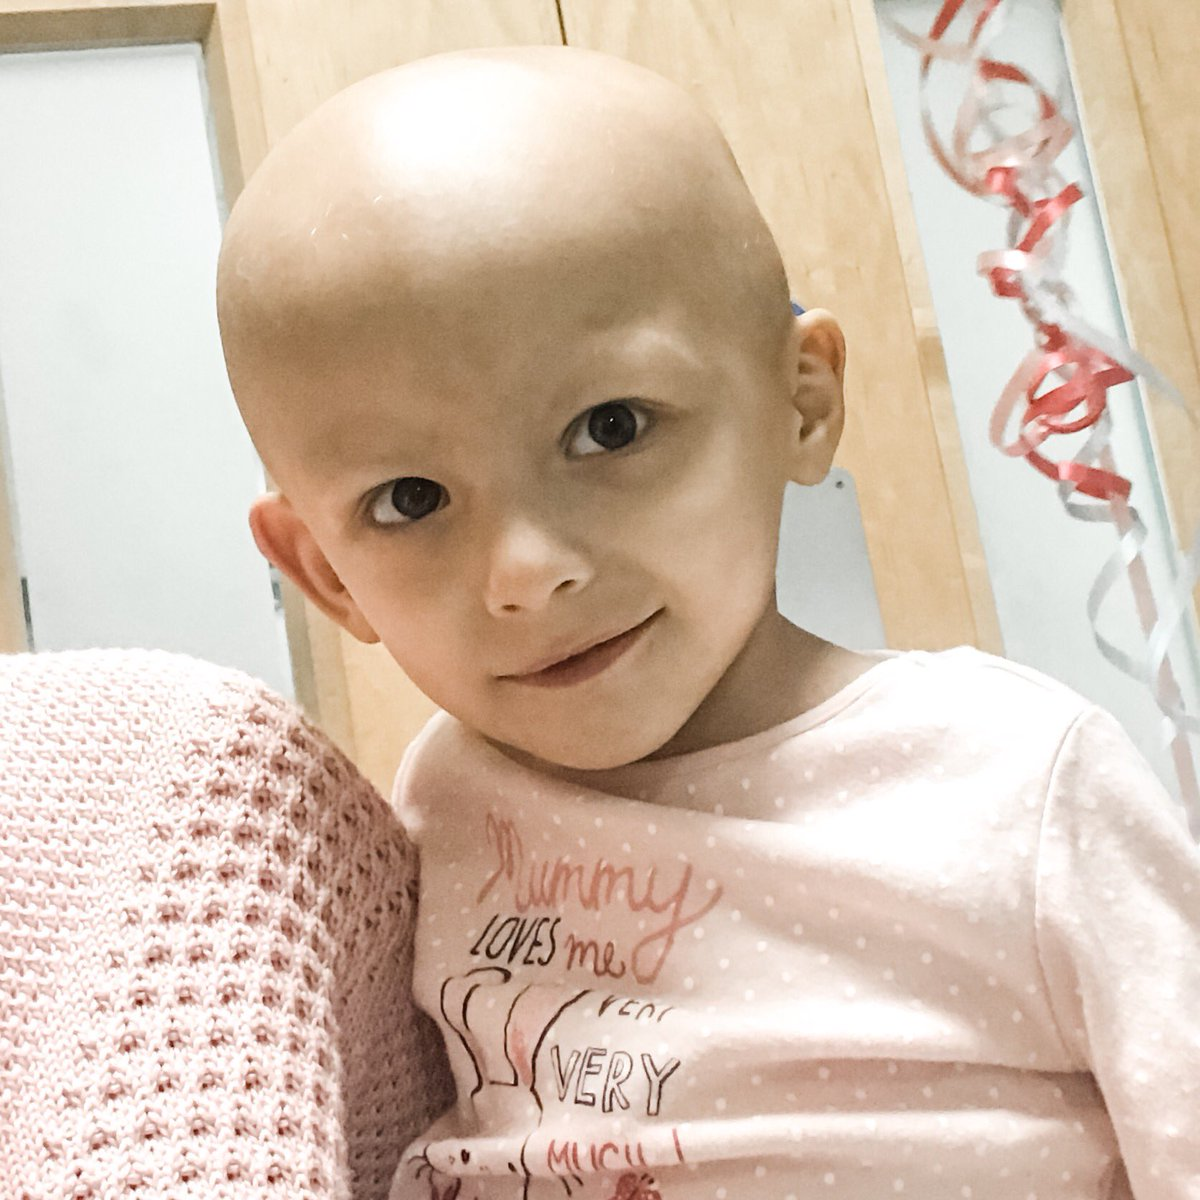 Hooray!  A massive well done to little Jasmine for completing her #radiotherapy treatment today!   @Leeds_Childrens #ChildhoodCancer<br>http://pic.twitter.com/S7SSWbR0yW